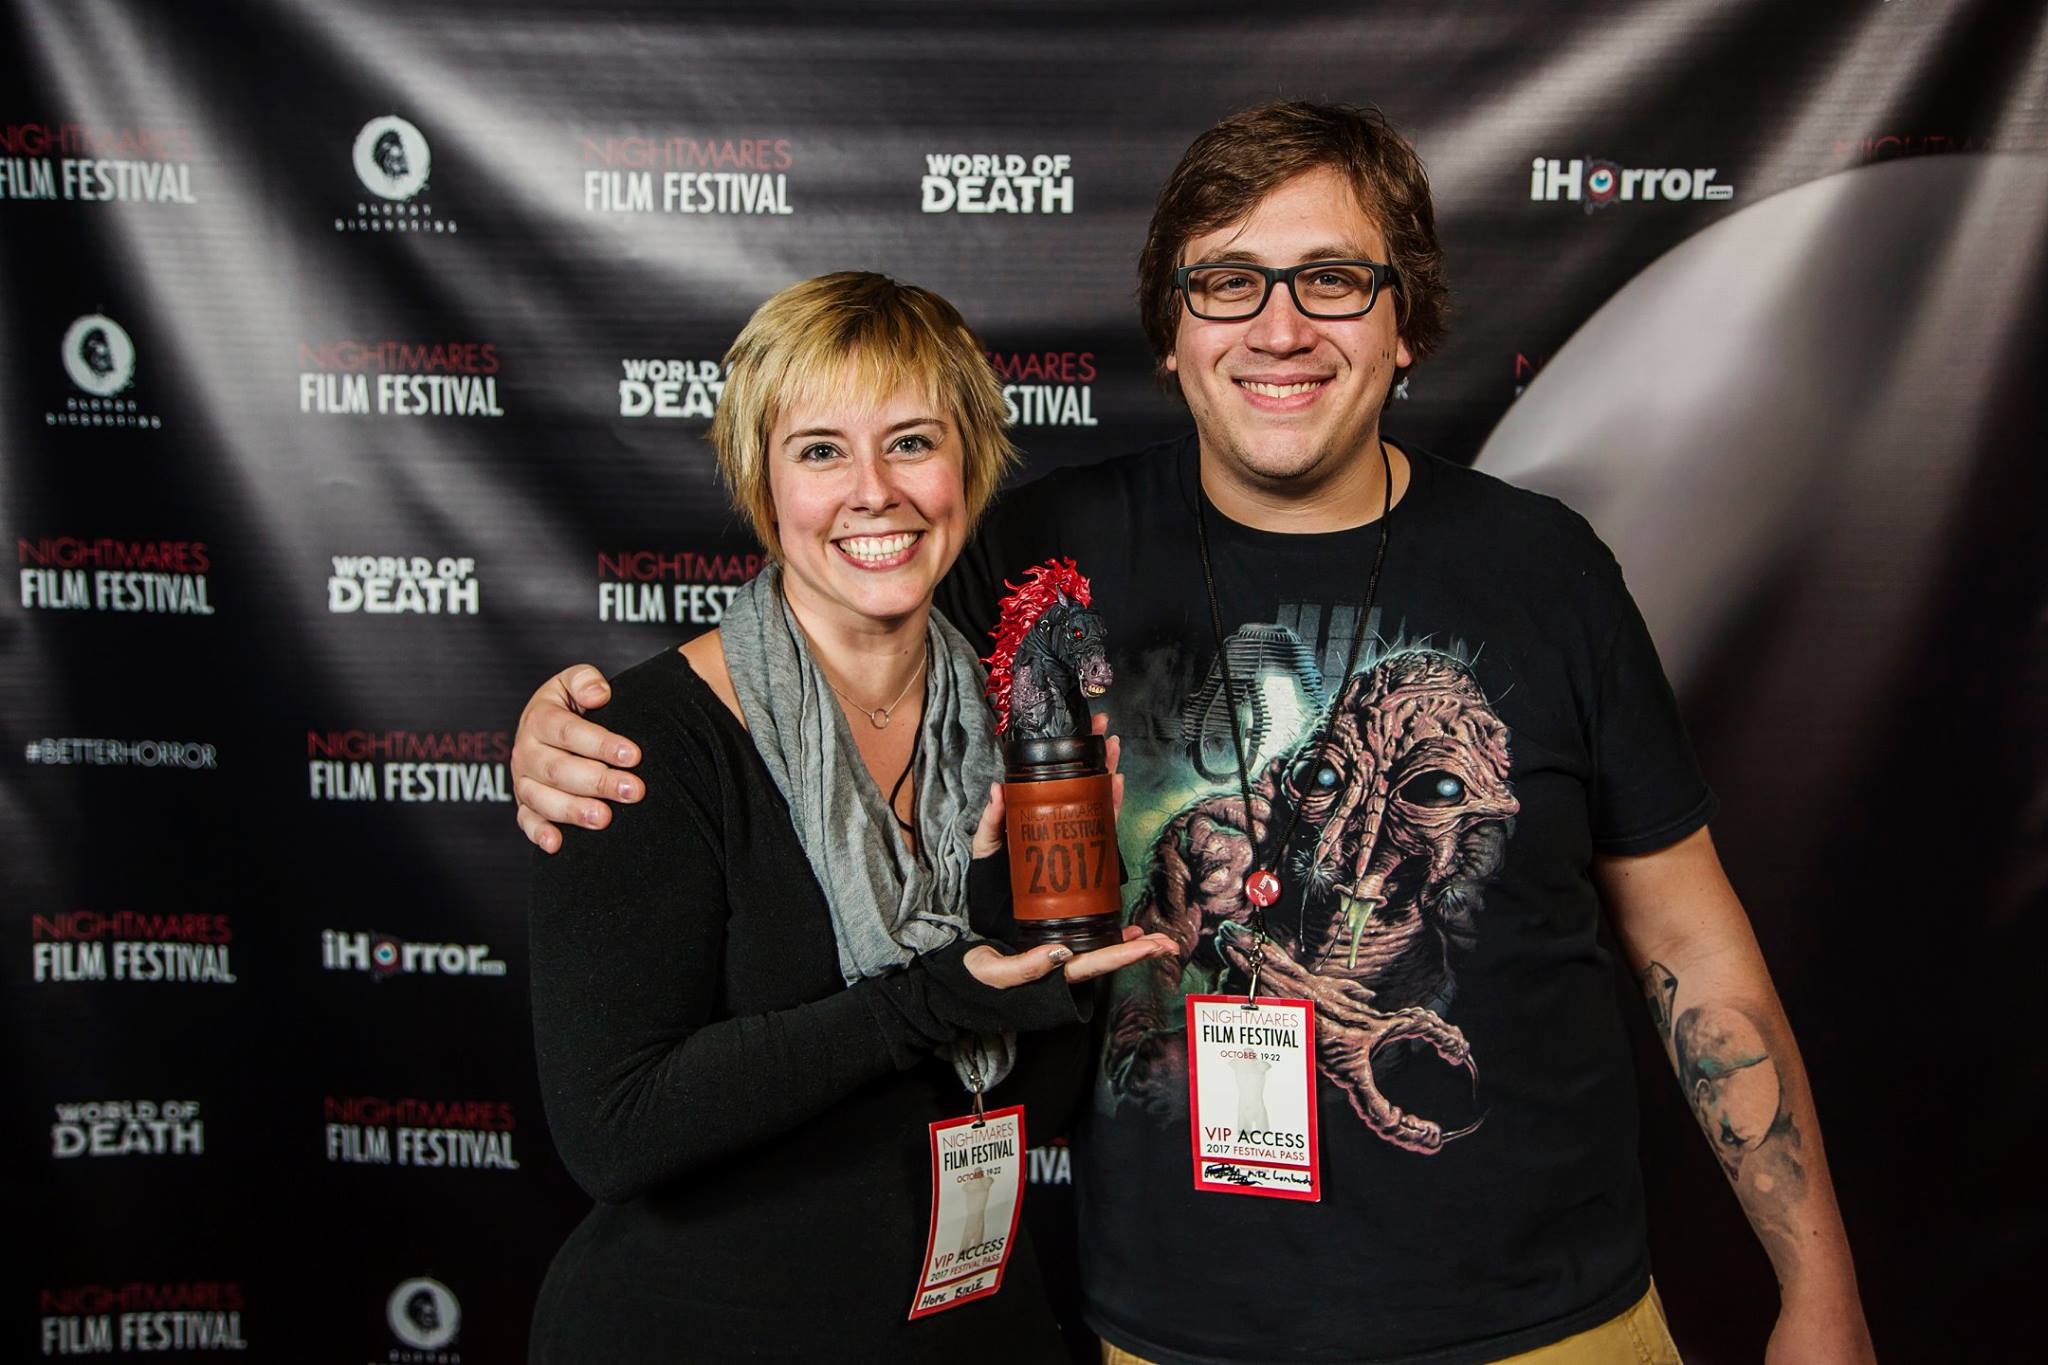 Hope Bikle (left) and Mike Lombardo (right) at Nightmares Film Festival 2017